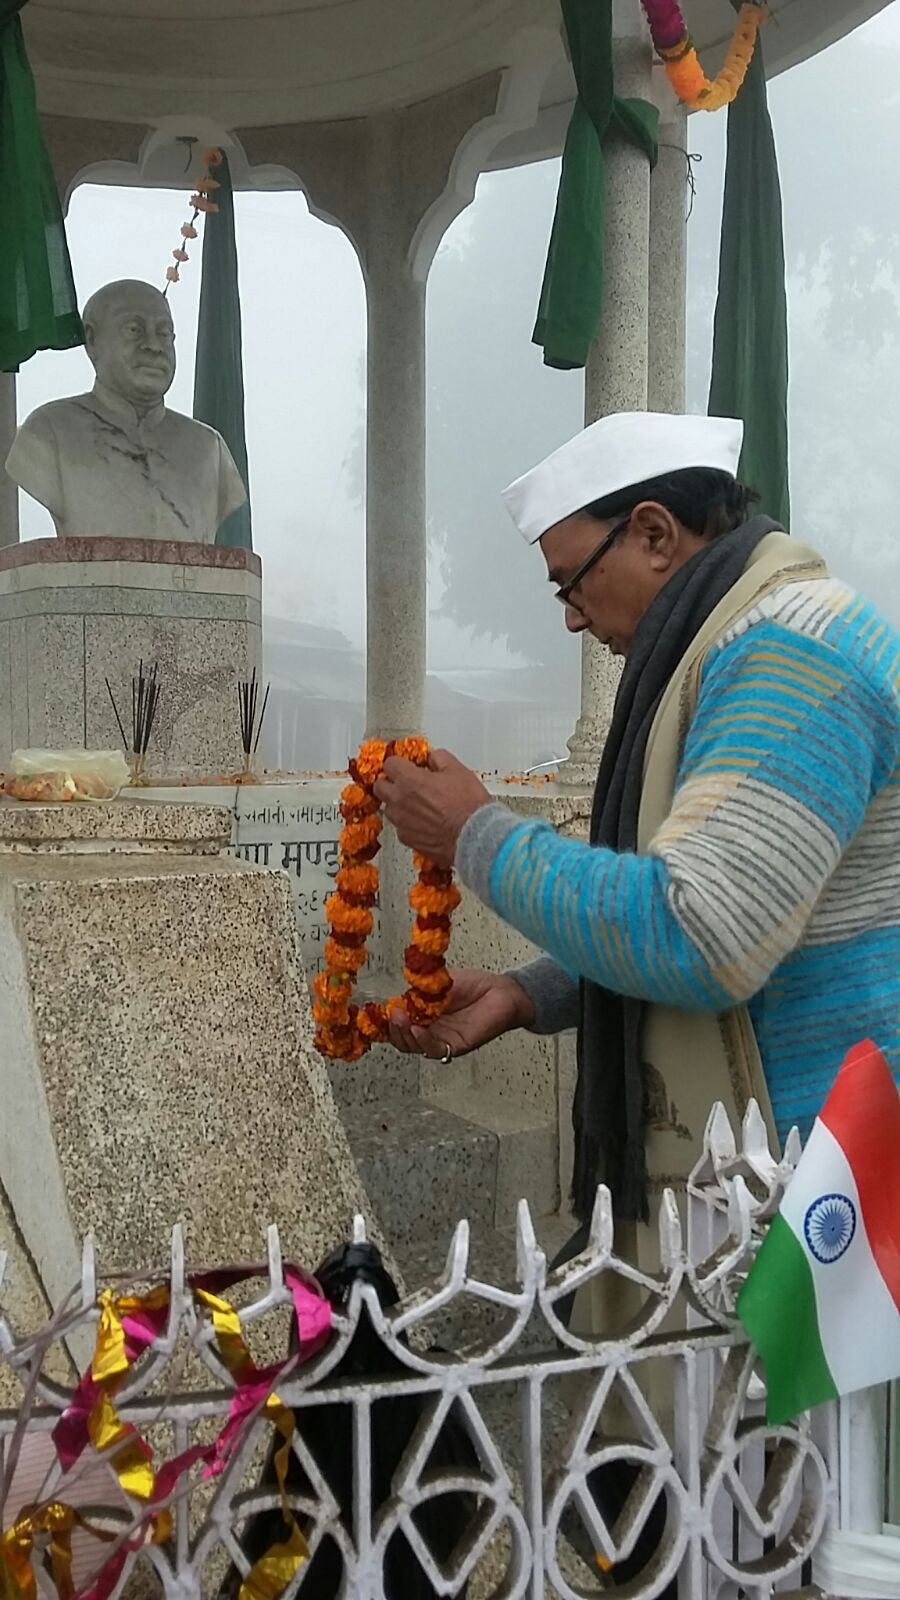 Dr.Bhupendra Madhepuri garlanding the Great Samajwadi Freedom Fighter Bhupendra Narayan Mandal before Flag Hoisting .